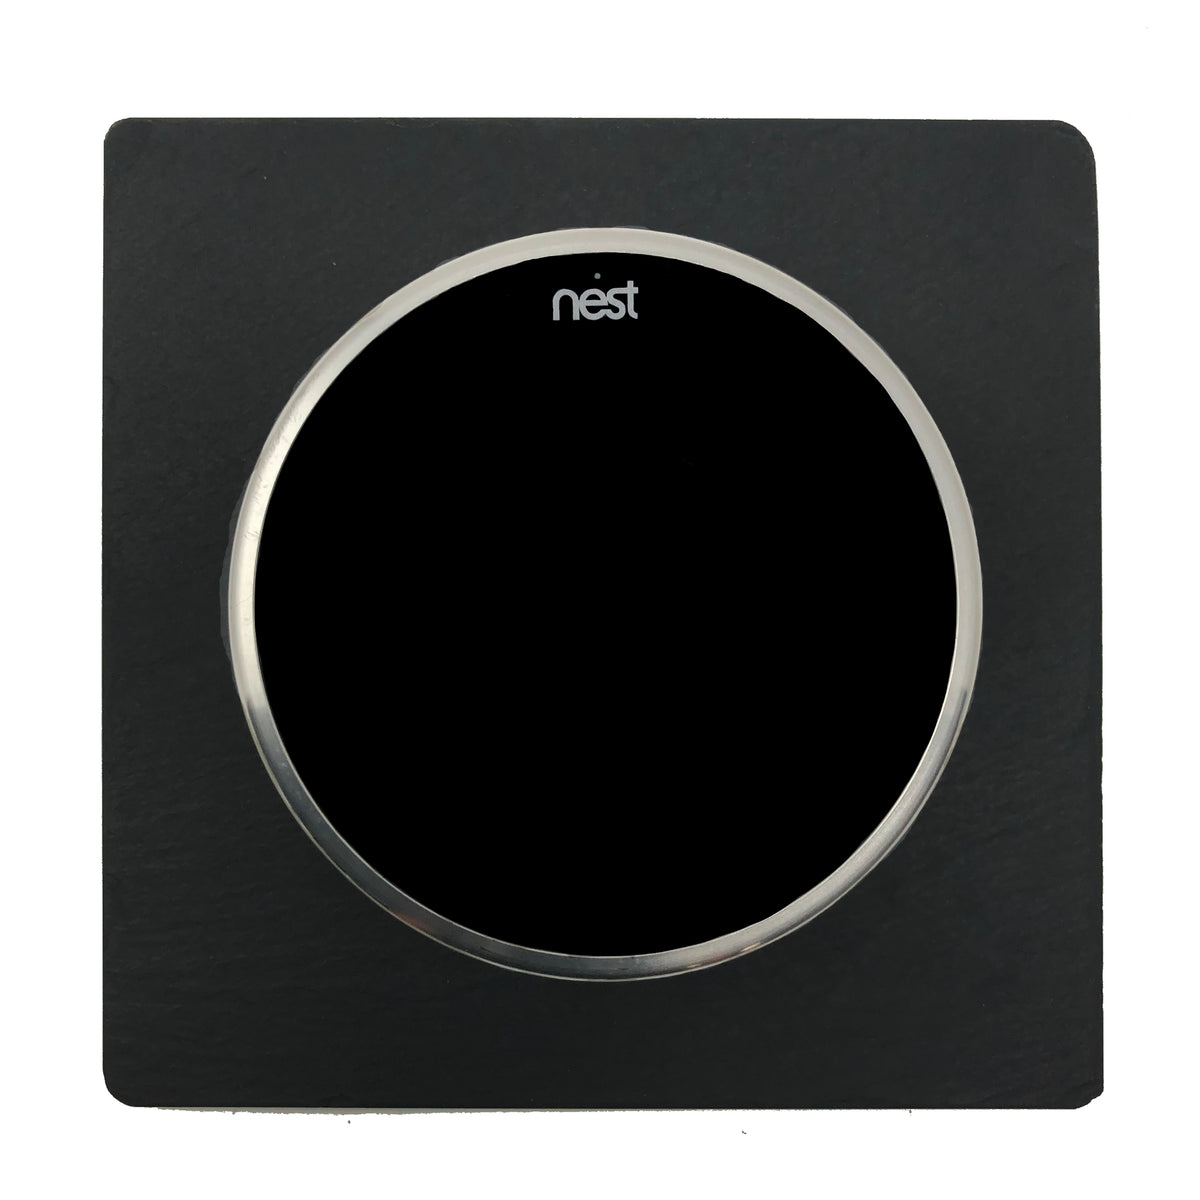 Nest Wall Plate 5 Inches Square Black Slate Stone